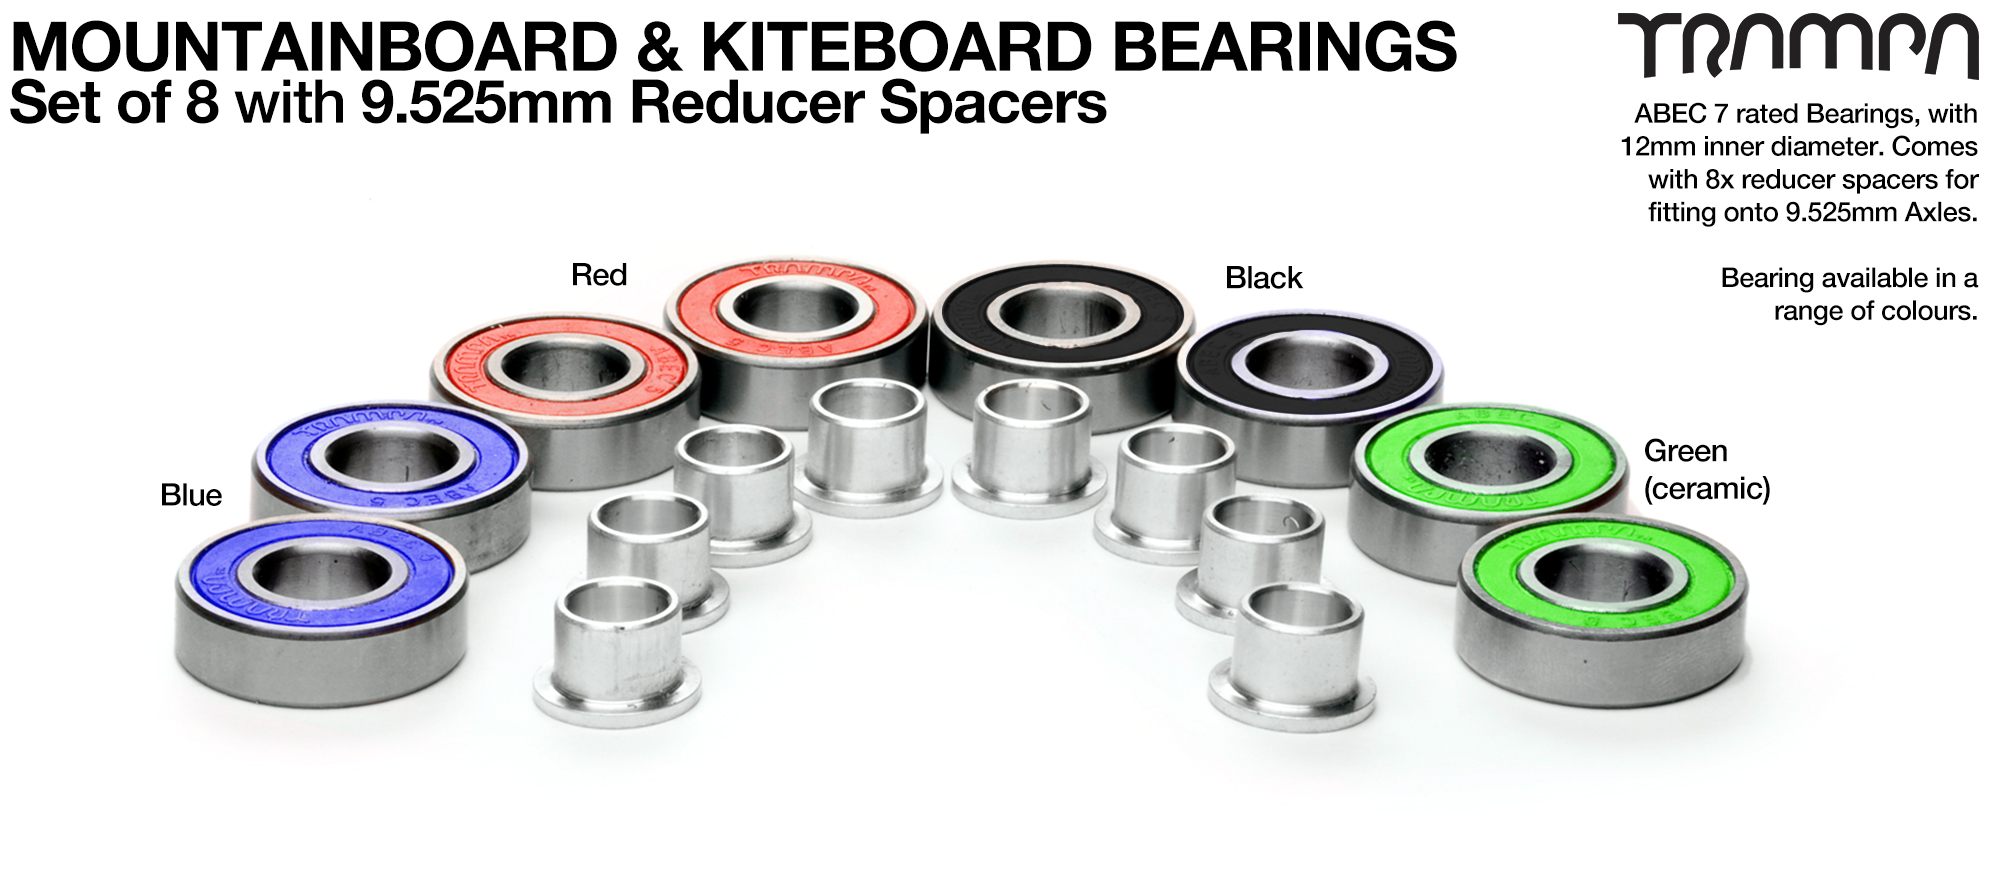 8x 12x28mm Mountainboard Bearings with 9.525mm reducer spacers